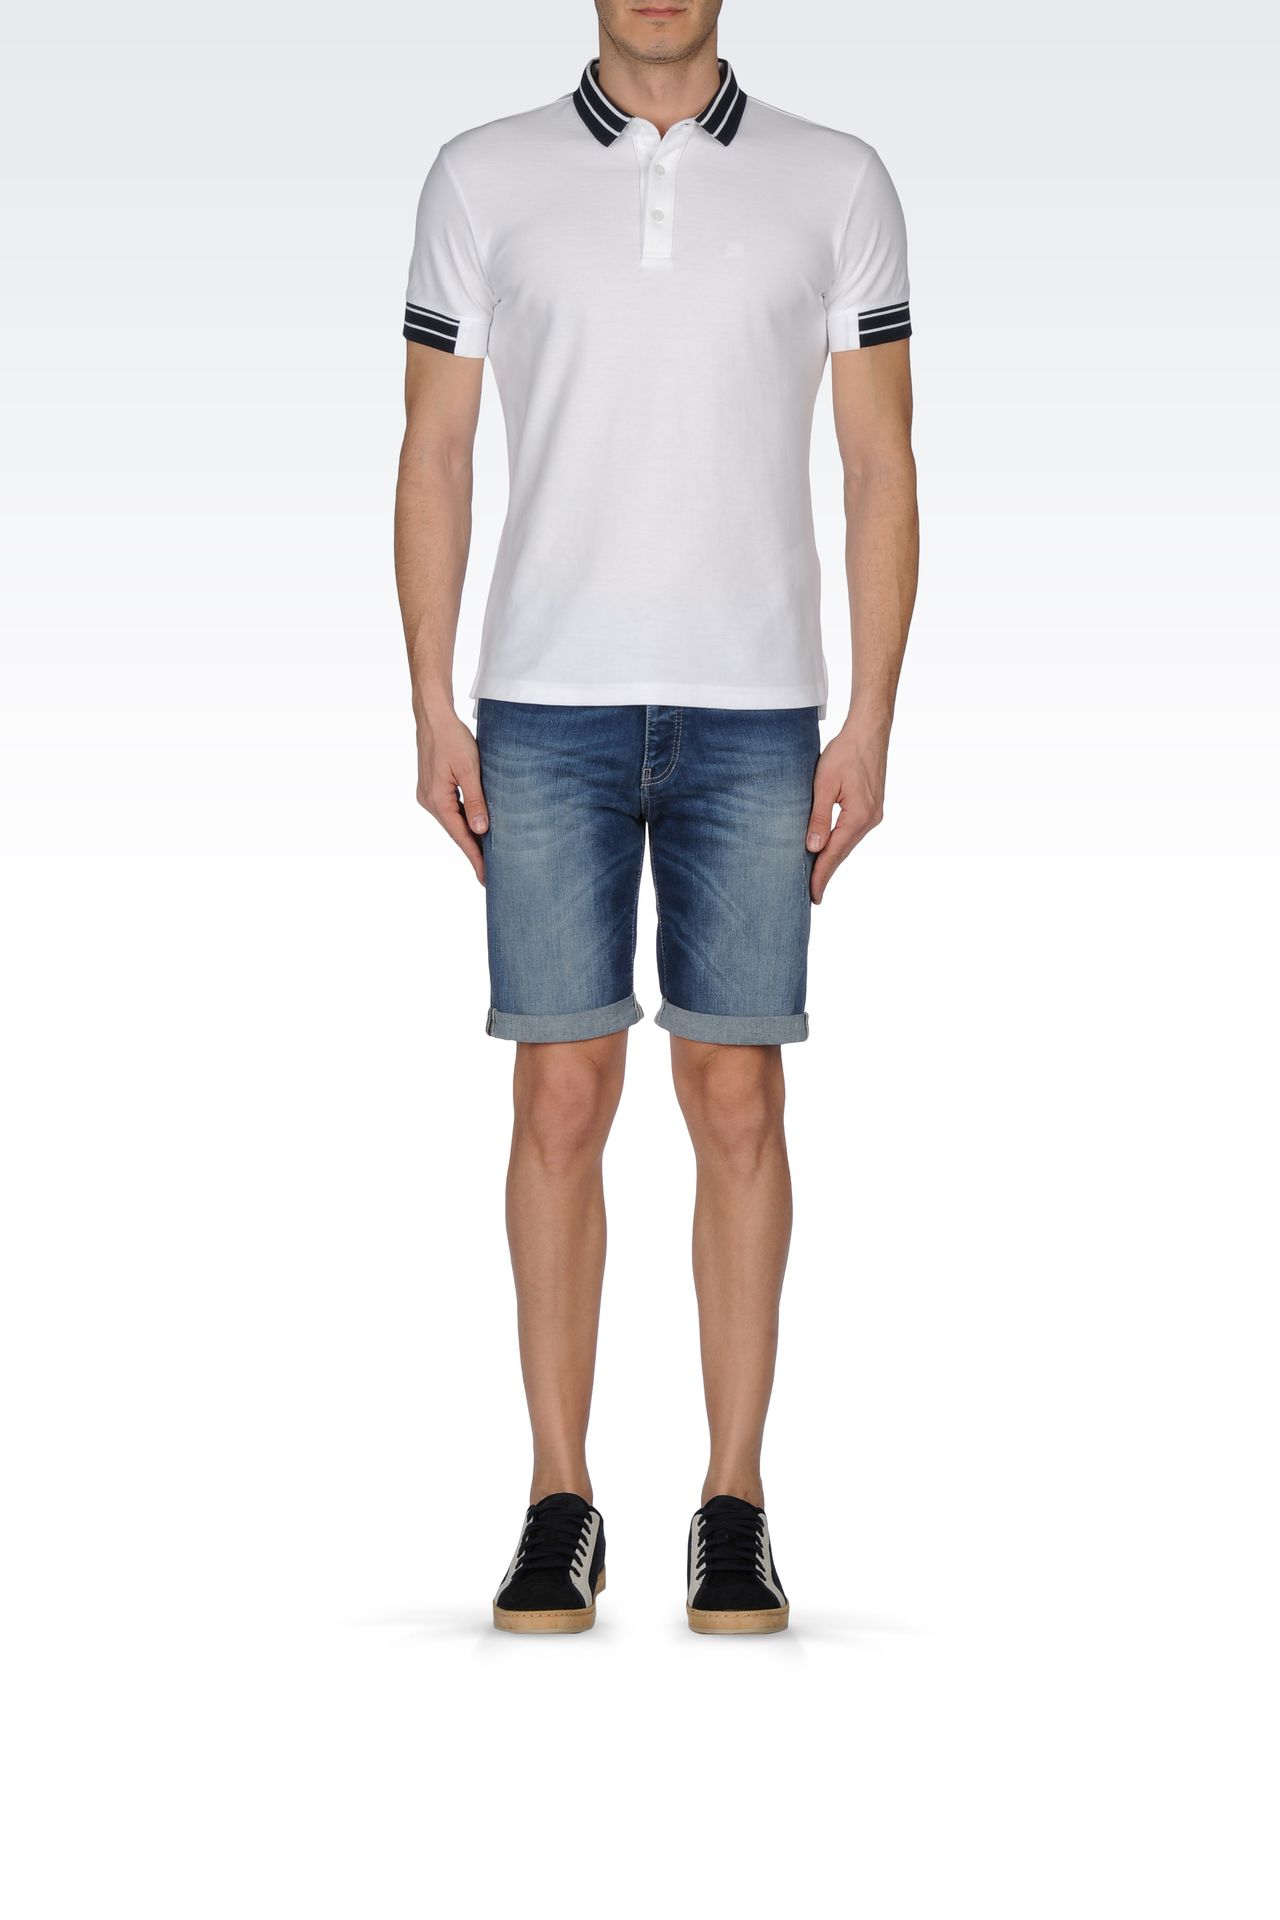 Armani Jeans Men VINTAGE WASH DENIM BERMUDA SHORTS - Armani.com